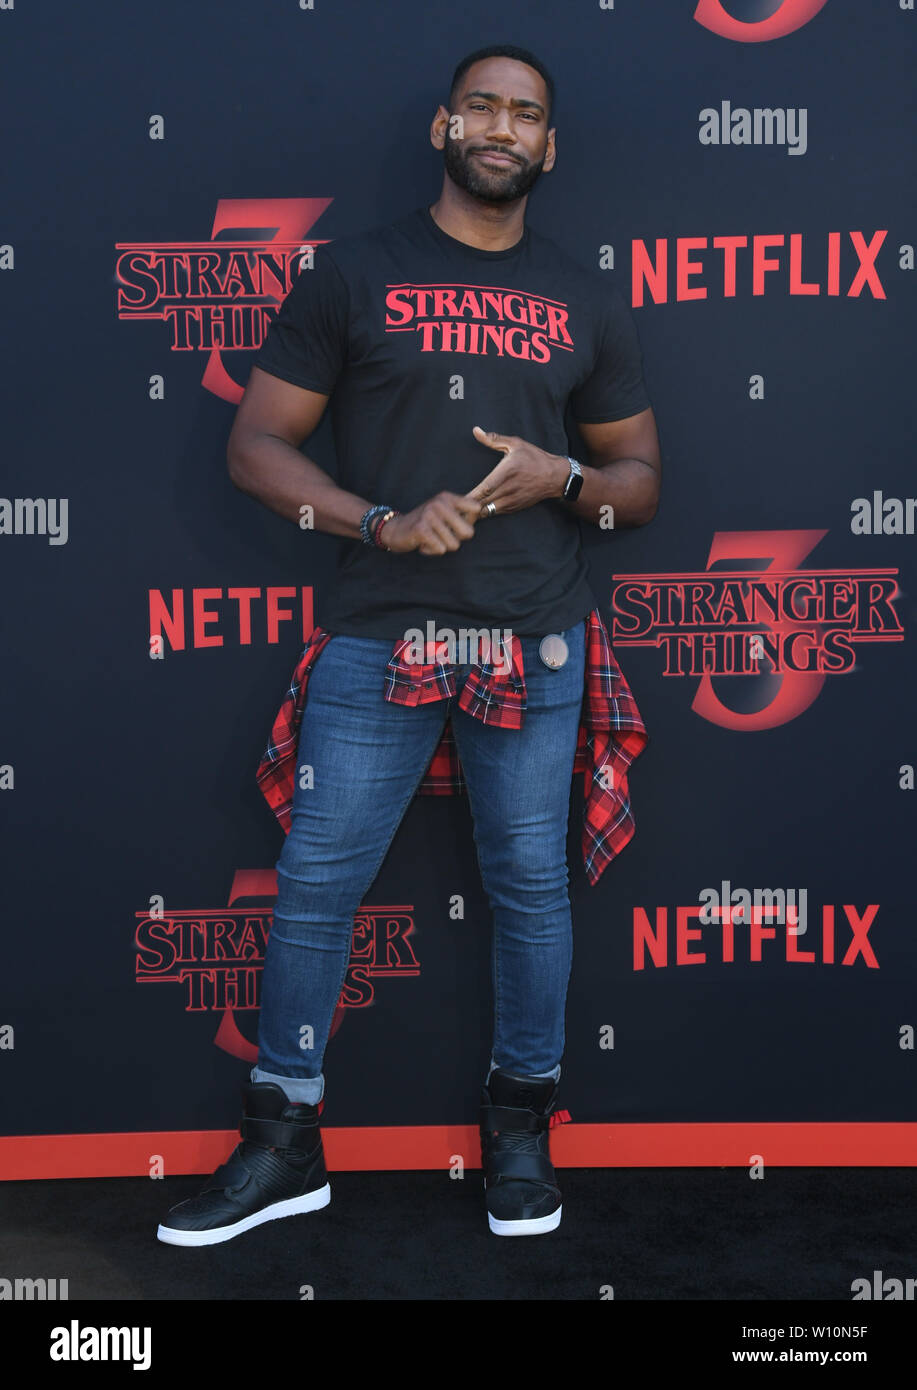 June 28 2019 Santa Monica California U S 28 June 2019 Santa Monica California Anthony Alabi Stranger Things 3 Los Angeles Premiere Held At Santa Monica High School Photo Join facebook to connect with anthony alabi and others you may know. alamy